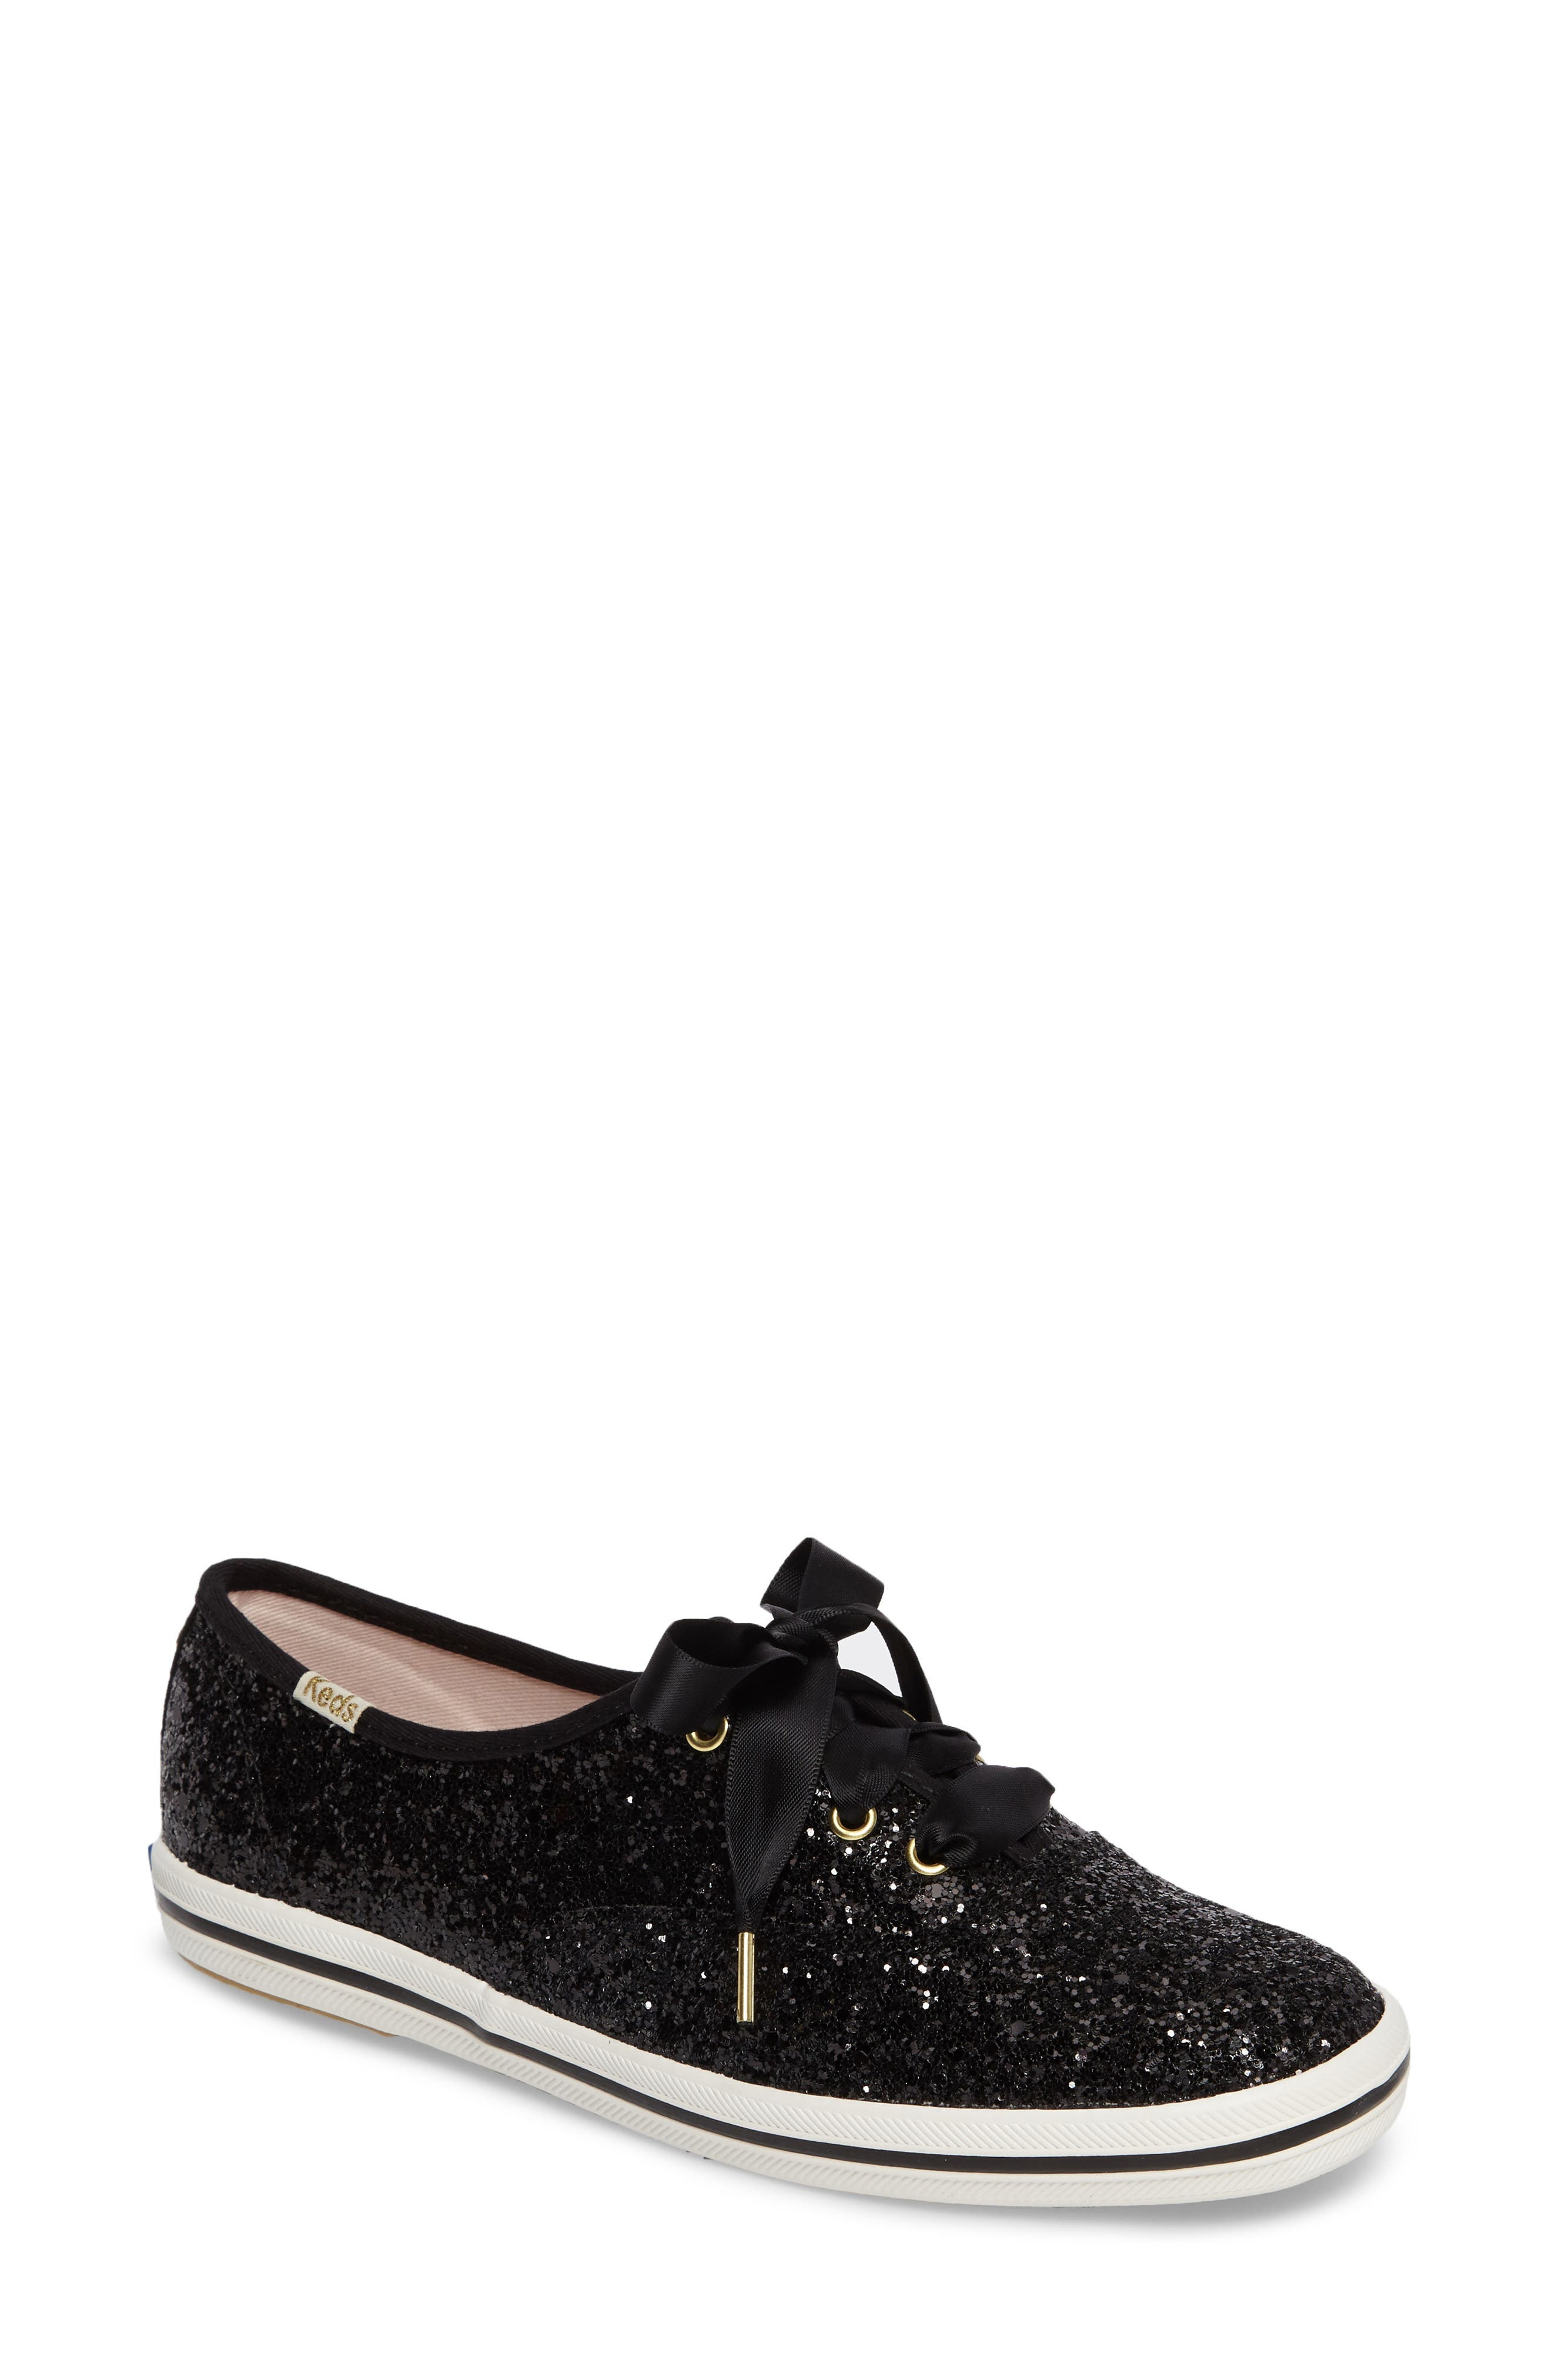 KEDS<SUP>®</SUP> FOR KATE SPADE NEW YORK, glitter sneaker, Main thumbnail 1, color, BLACK